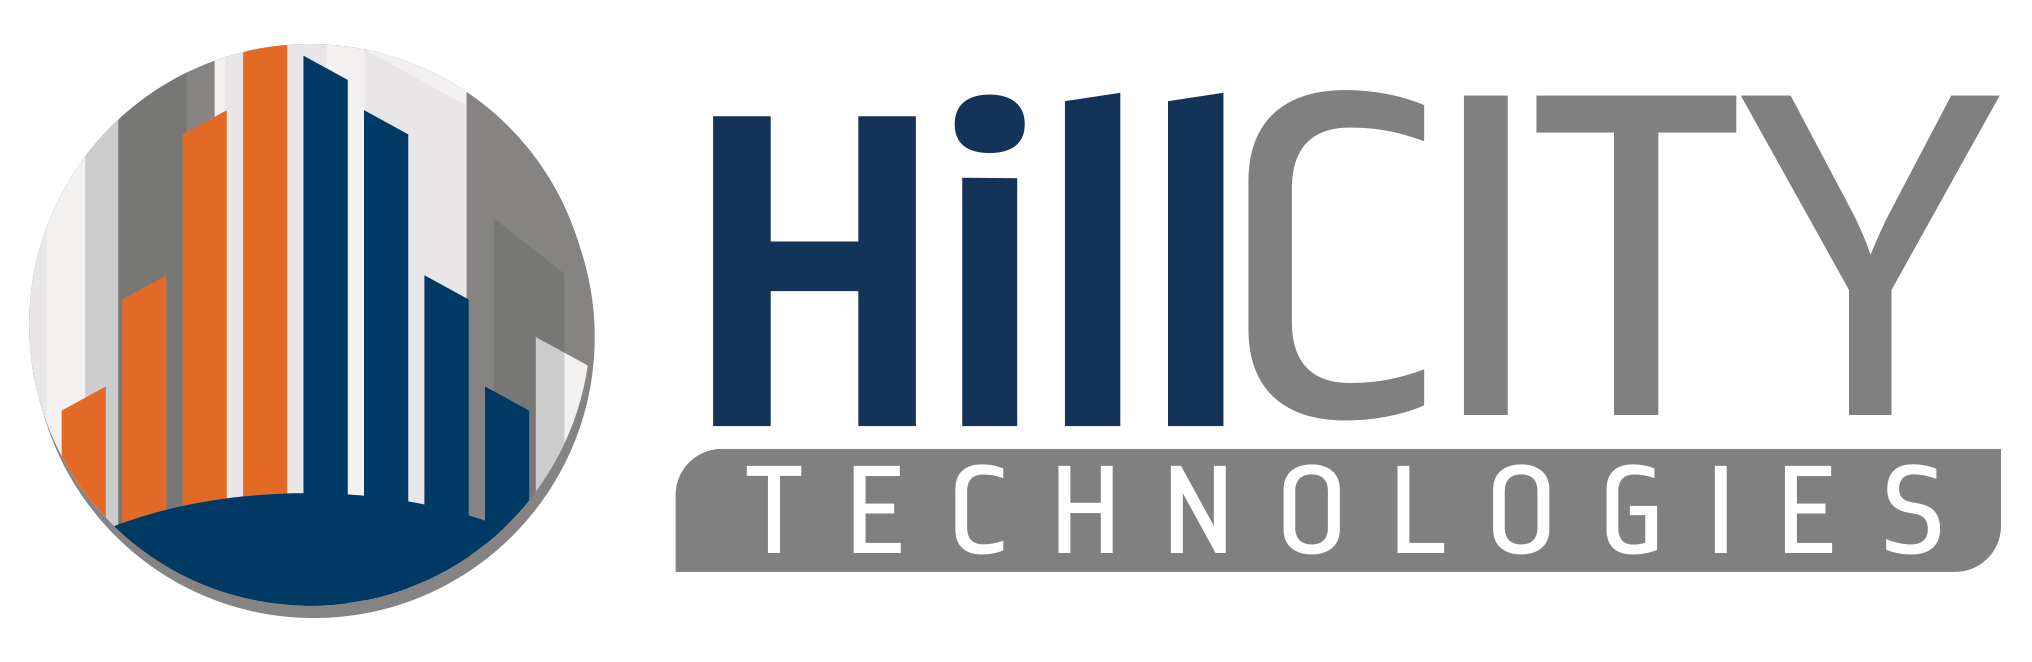 HillCity Technology